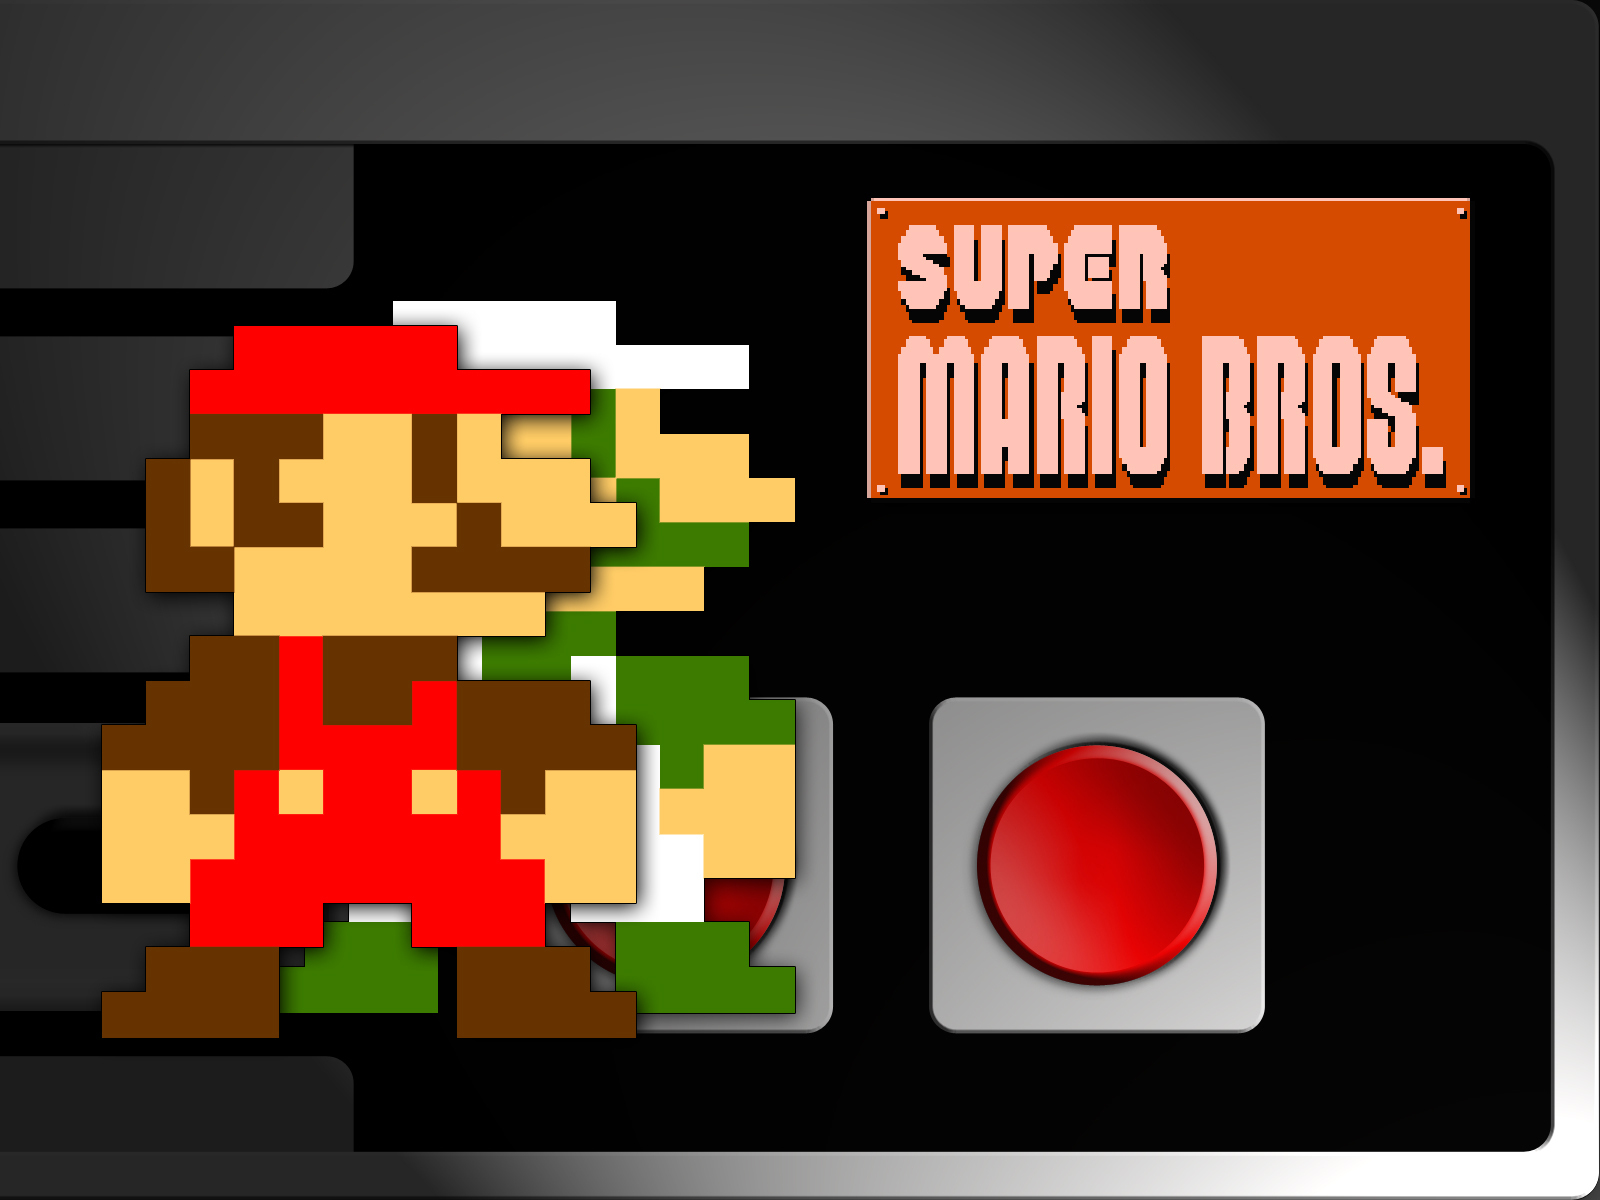 50 Super Mario Bros Nes Wallpaper On Wallpapersafari